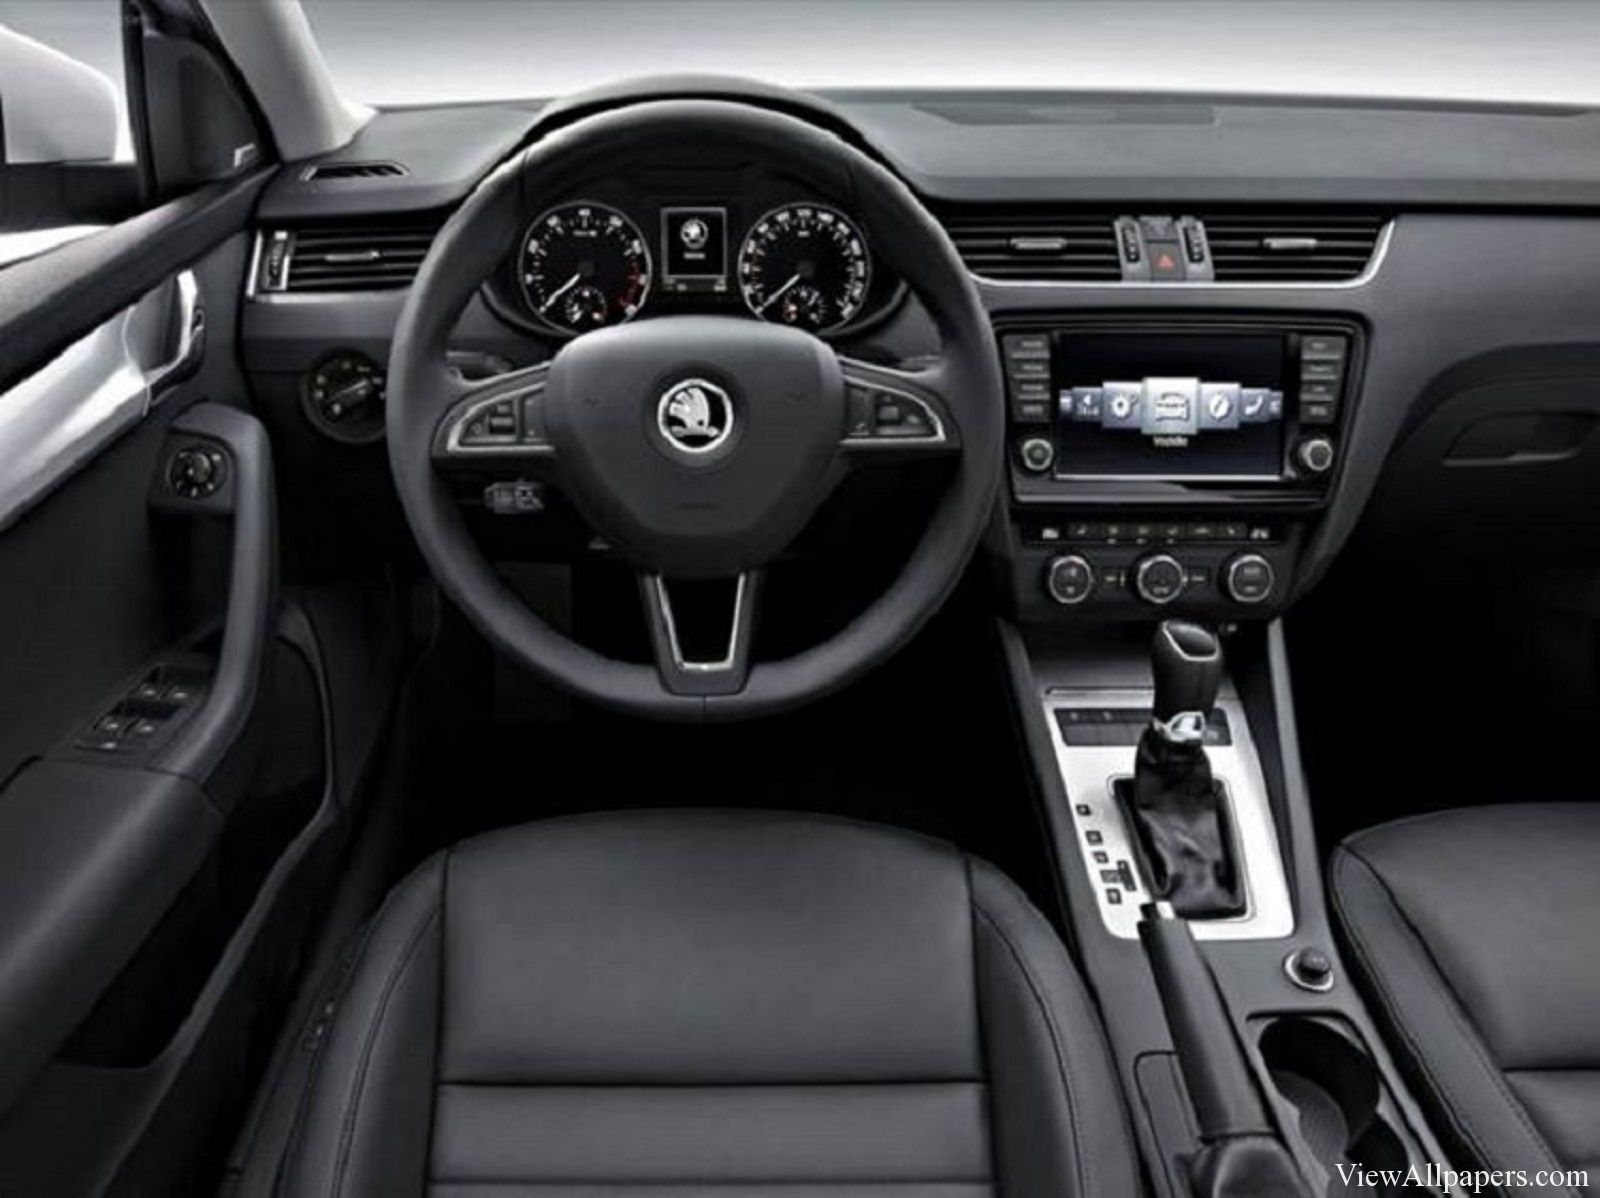 Volkswagen Group Latest Models >> 2016 Skoda Octavia Interior | Vehicles, Cars, Latest cars